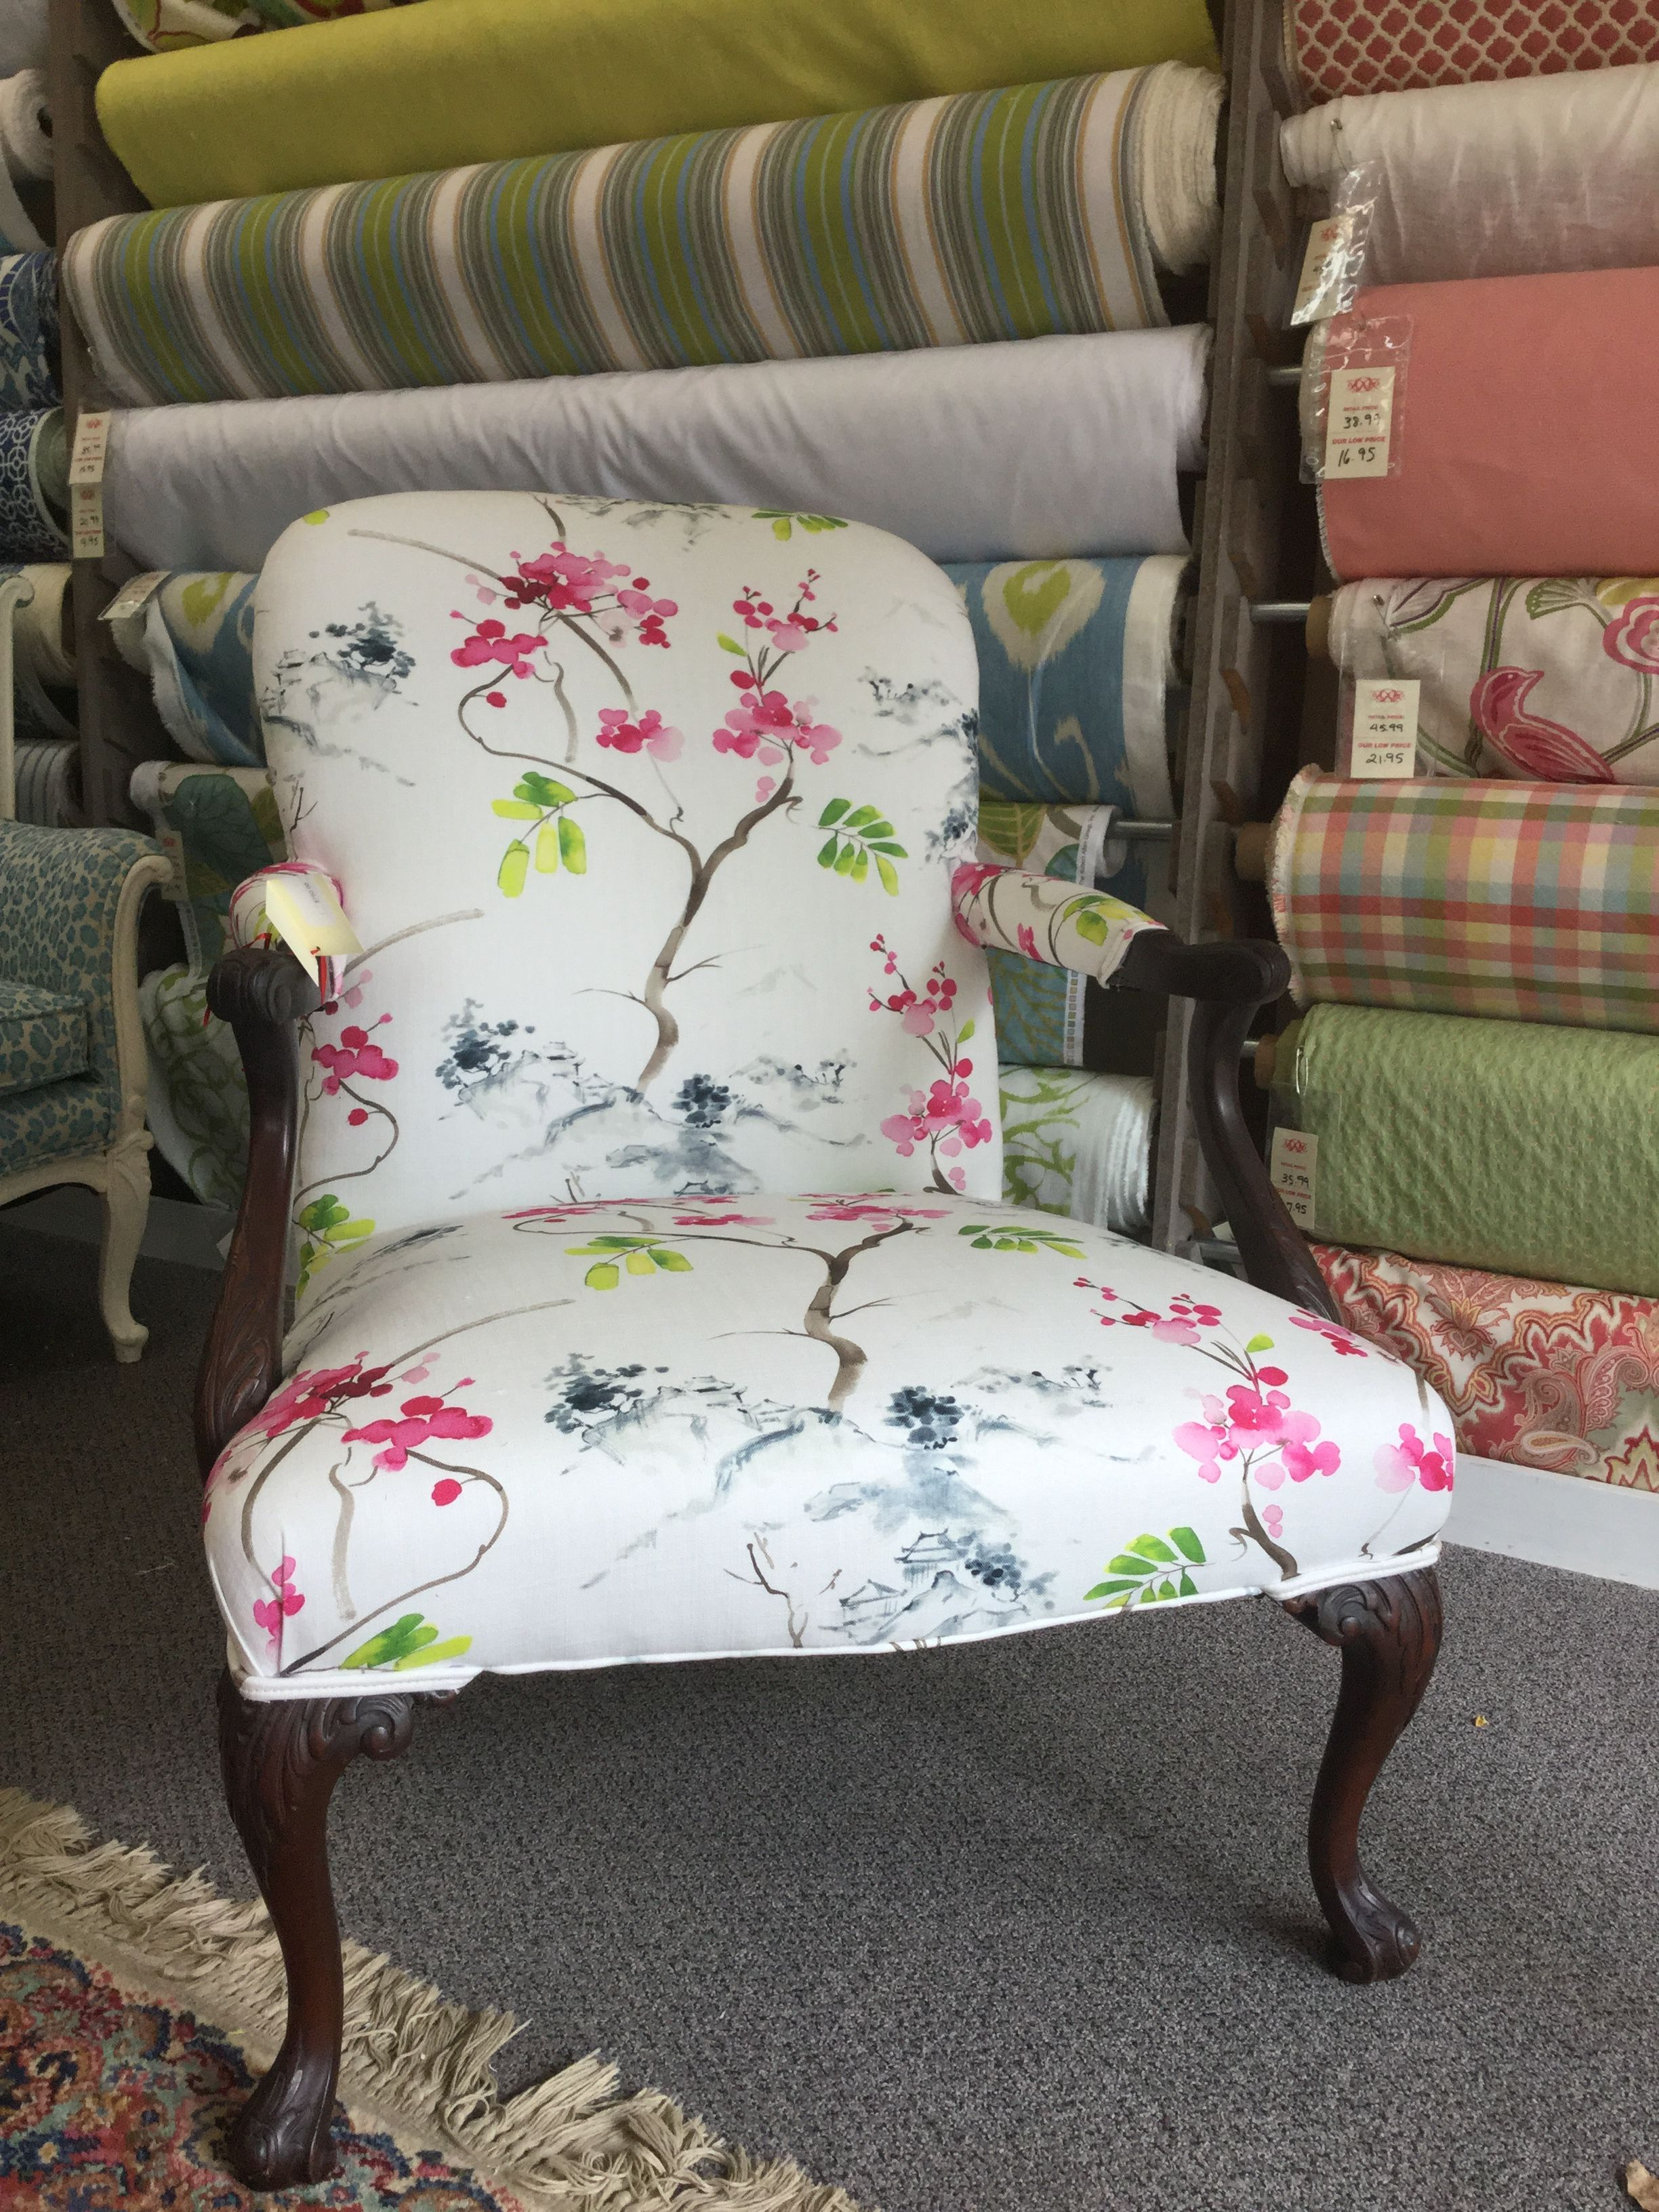 This is a chair after new upholstery fabric akita blossom